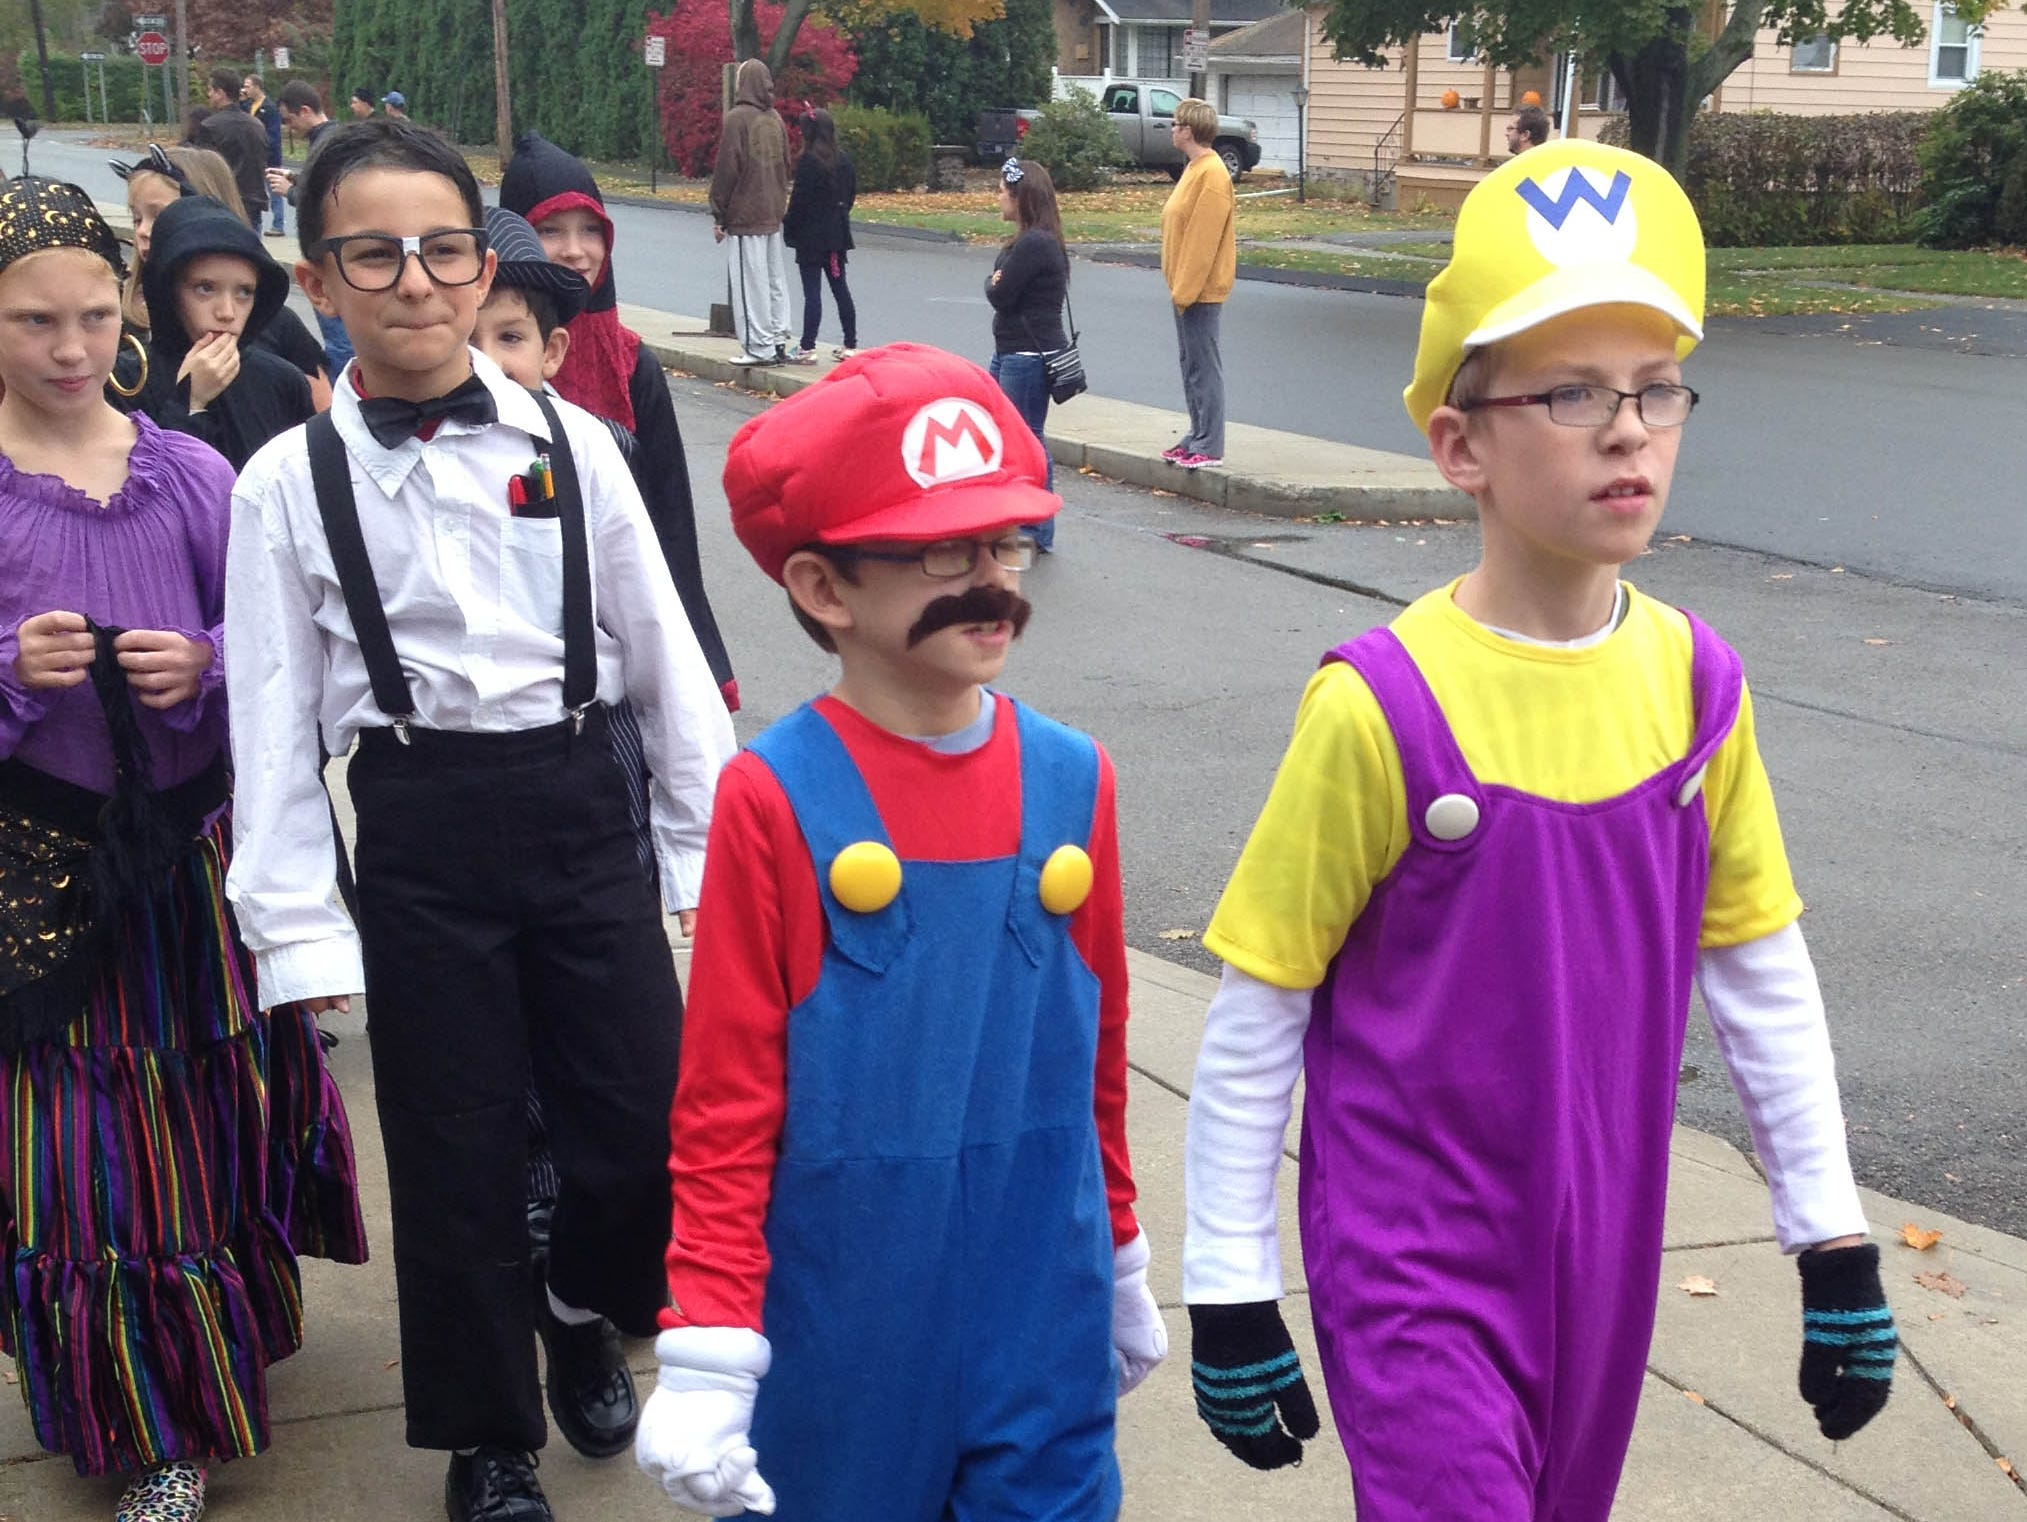 2013:  Halloween was celebrated in festive fashion on Thursday as eight elementary schools throughout the Elmira City School District conducted parades throughout the day. The parades are an annual event in the district. Here, Mario and Luigi take a stroll outside Hendy Elementary School in West Elmira.